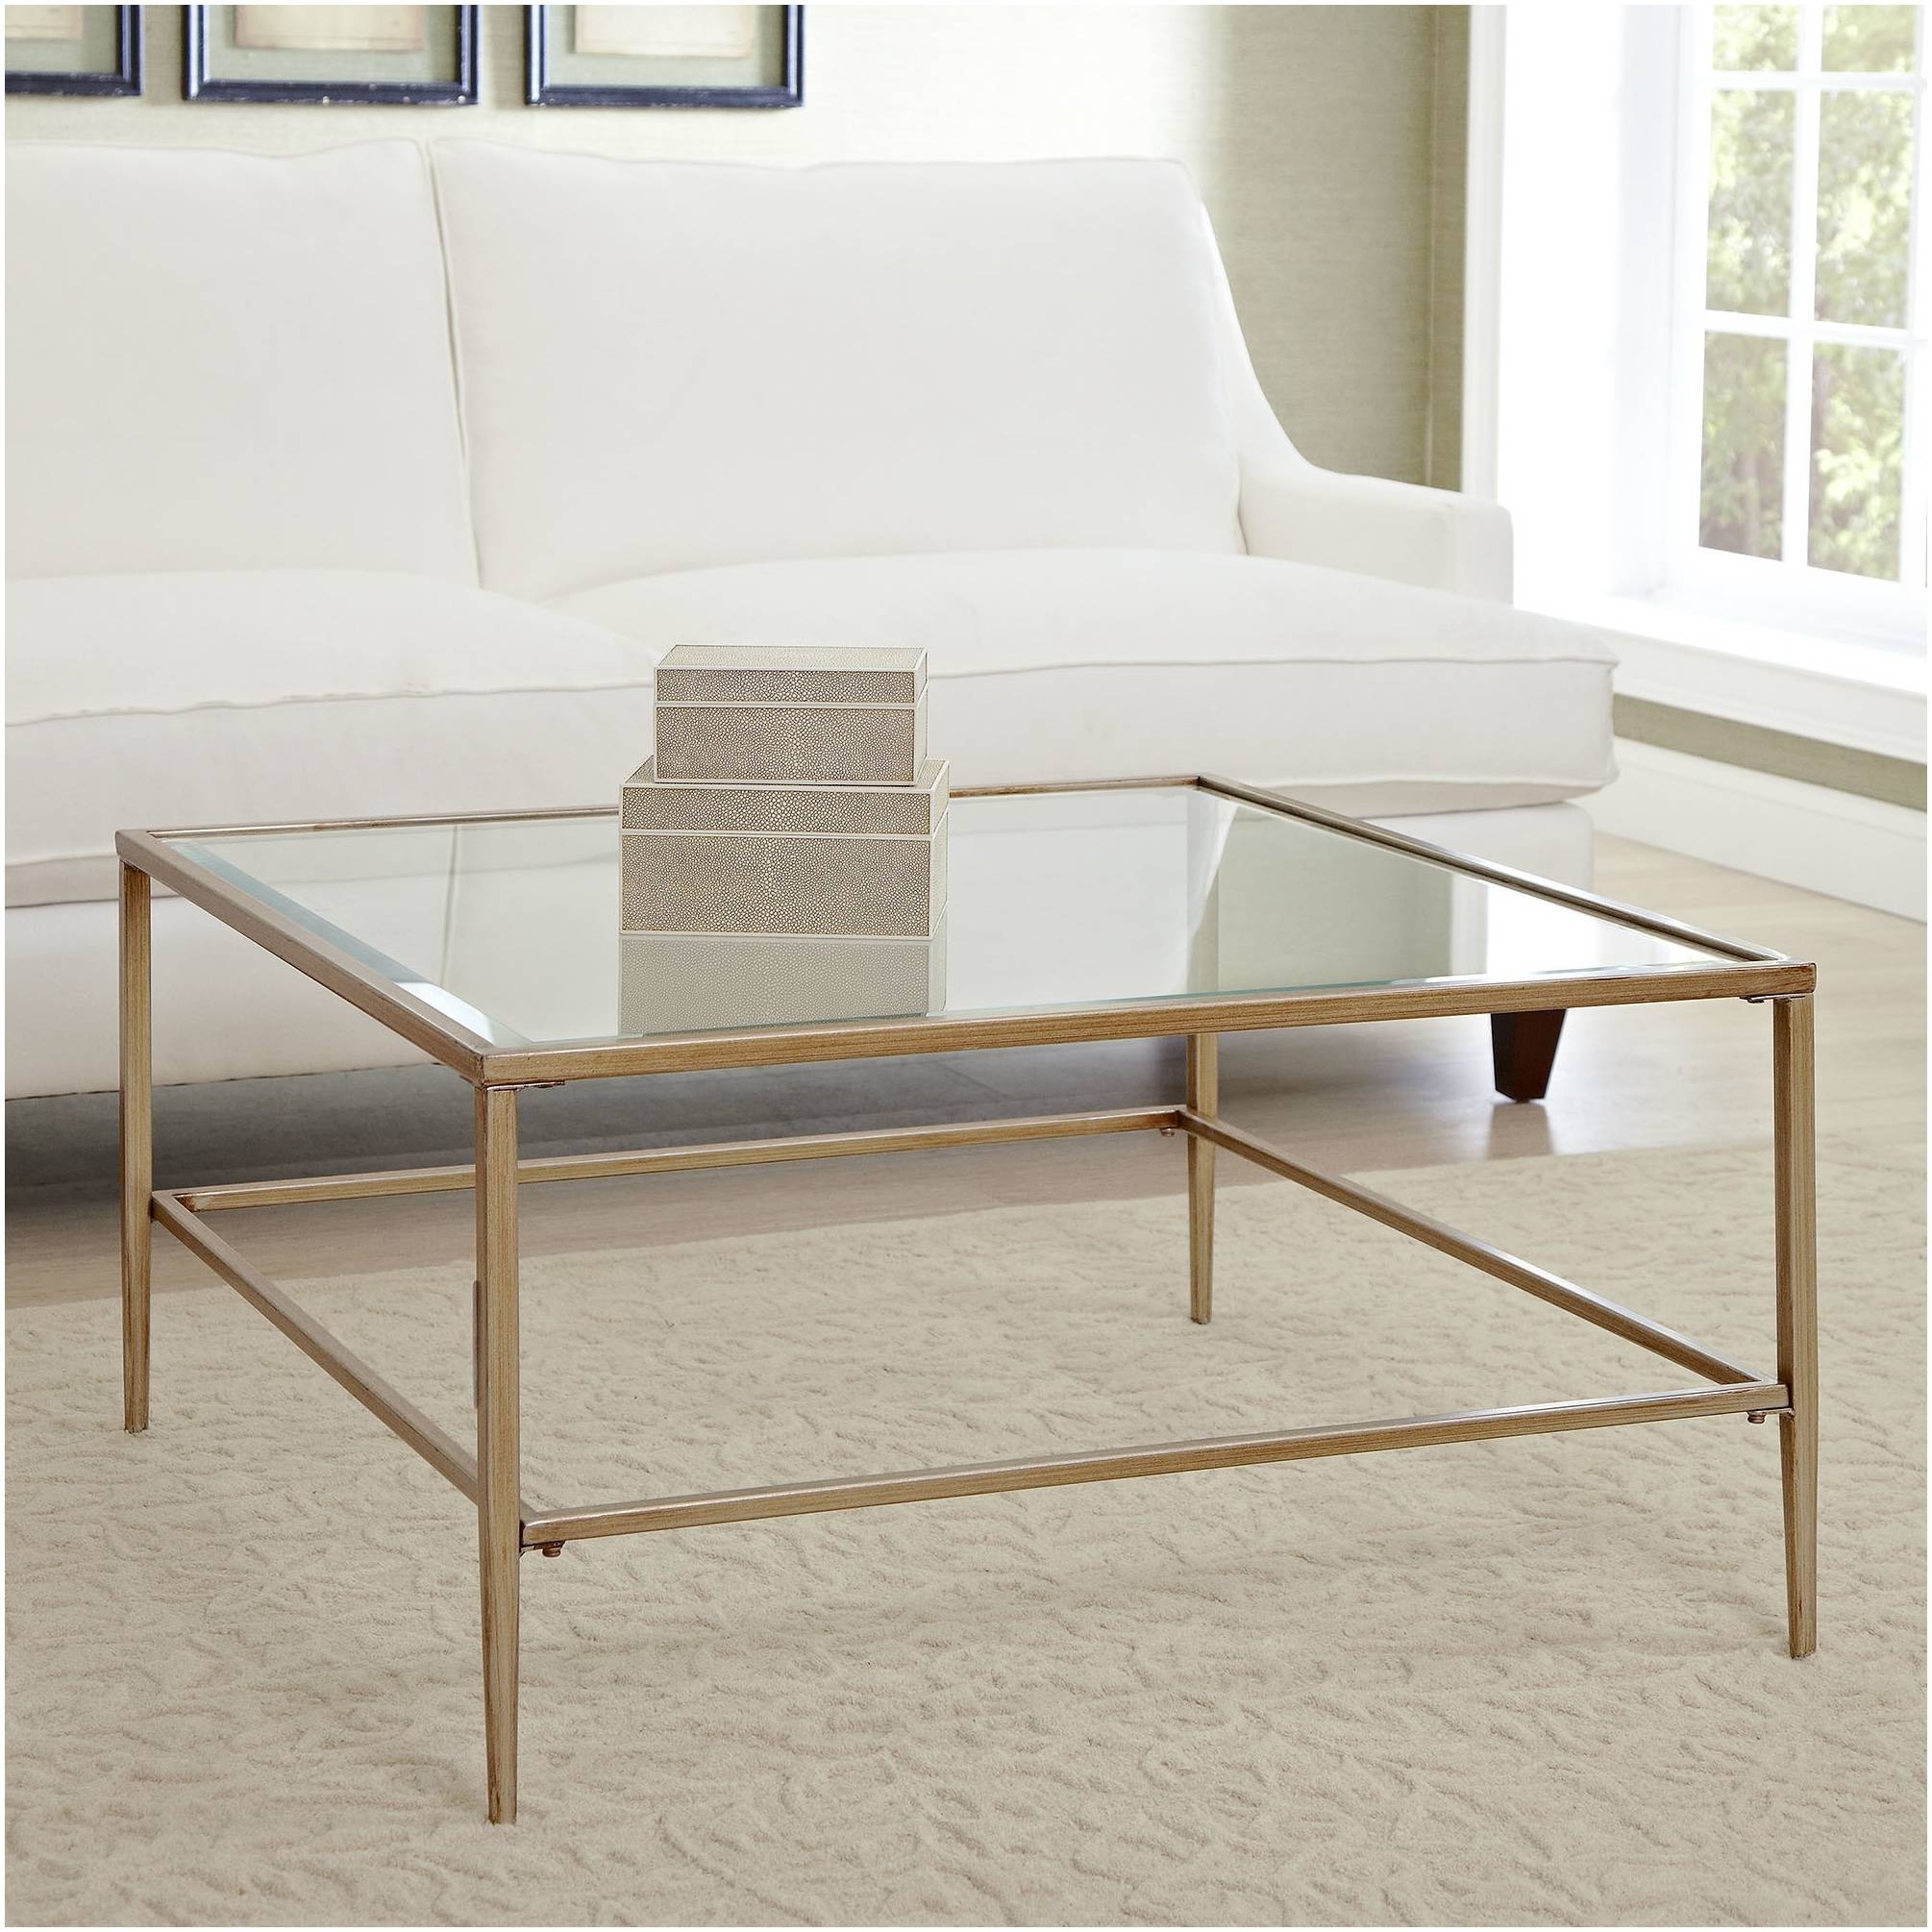 Furniture ~ Square Coffee Table With Storage Uk Image Of Square for Large Square Glass Coffee Tables (Image 16 of 30)